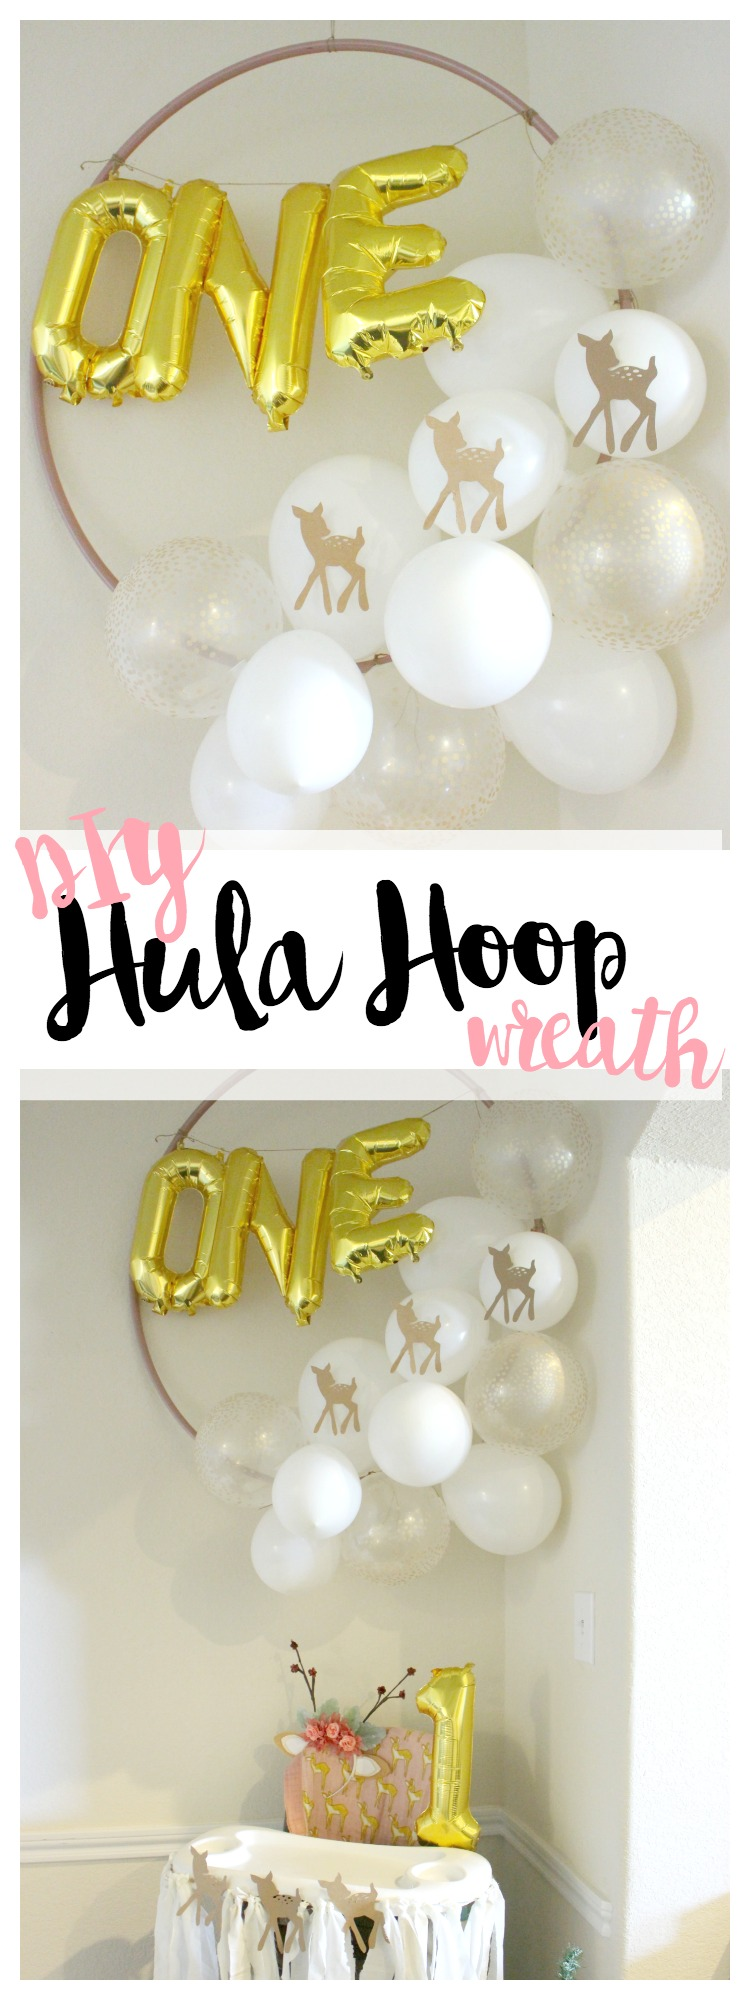 DIY Hula Hoop Wreath! These are so Easy & CHEAP to Make! Add pizzazz to any party, celebration or get-together!